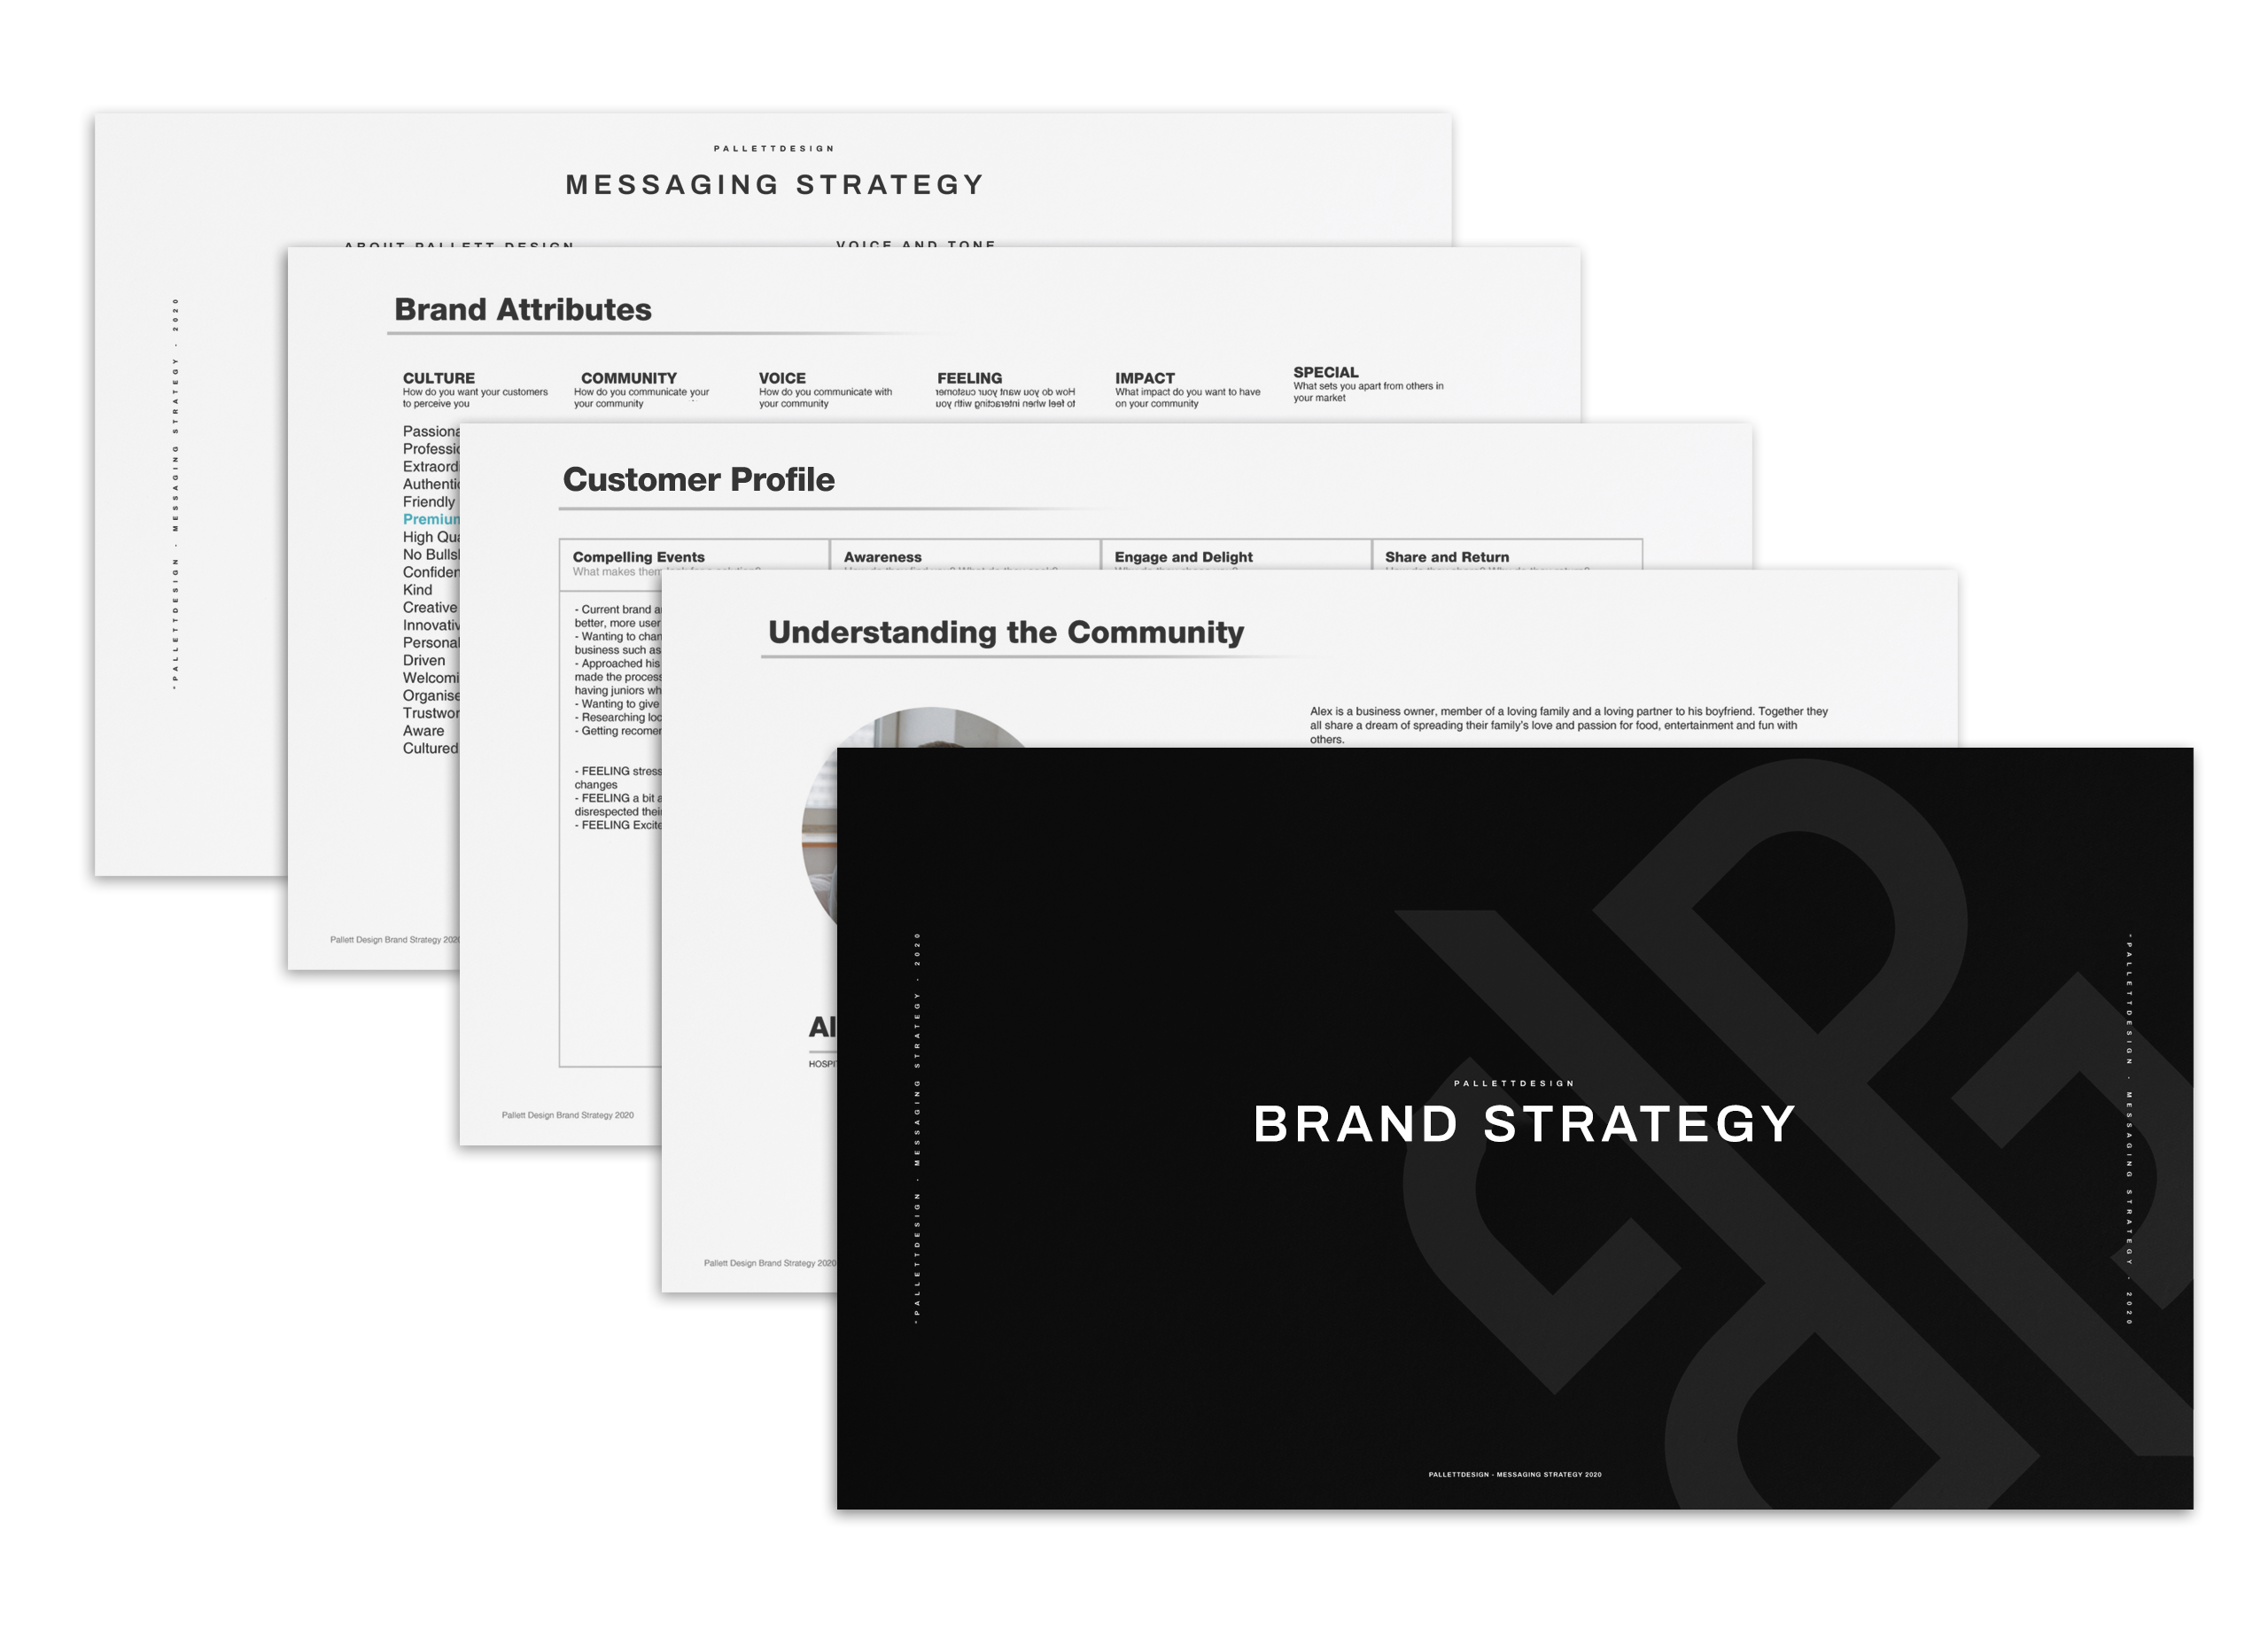 Sheets of paper with a brand strategy